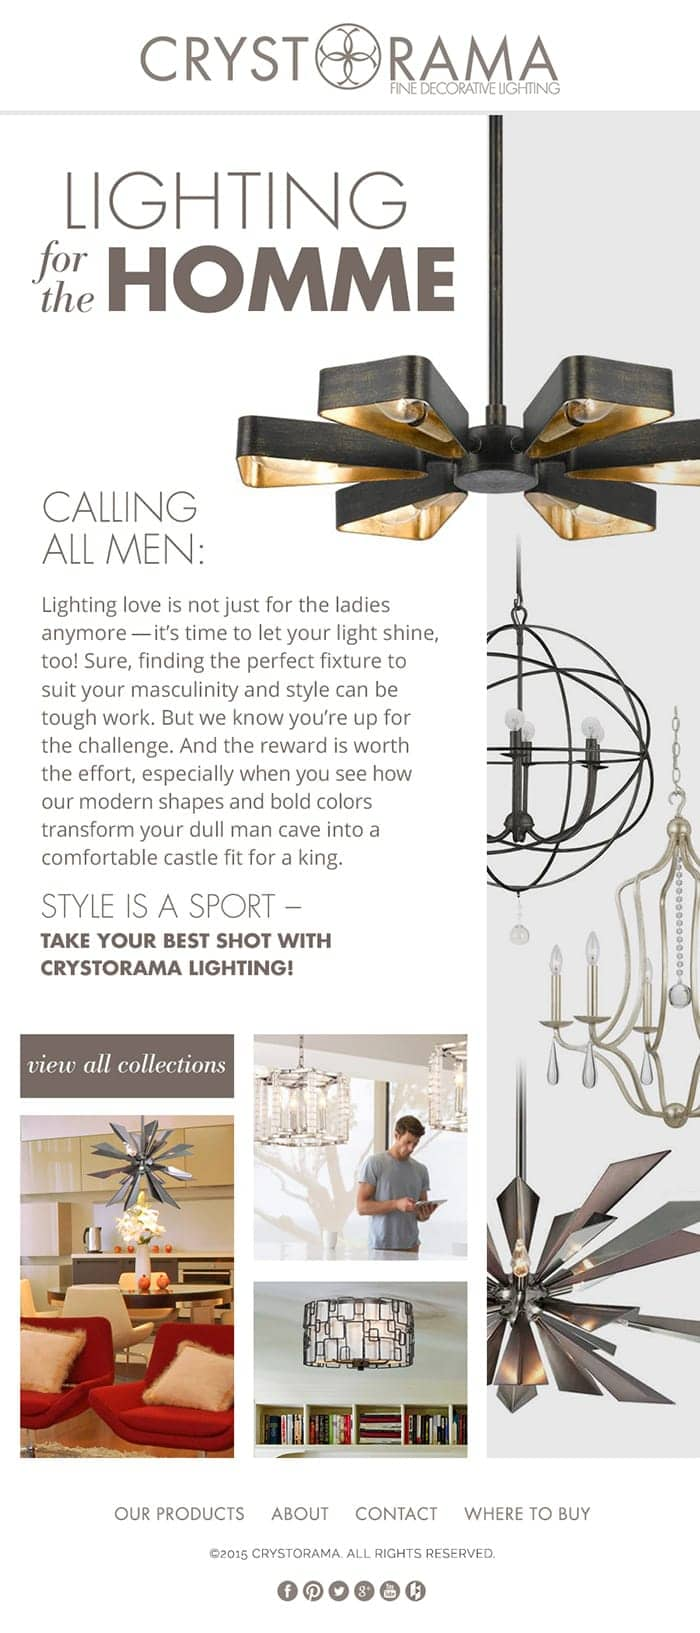 Mens style lighting from the Crystorama website